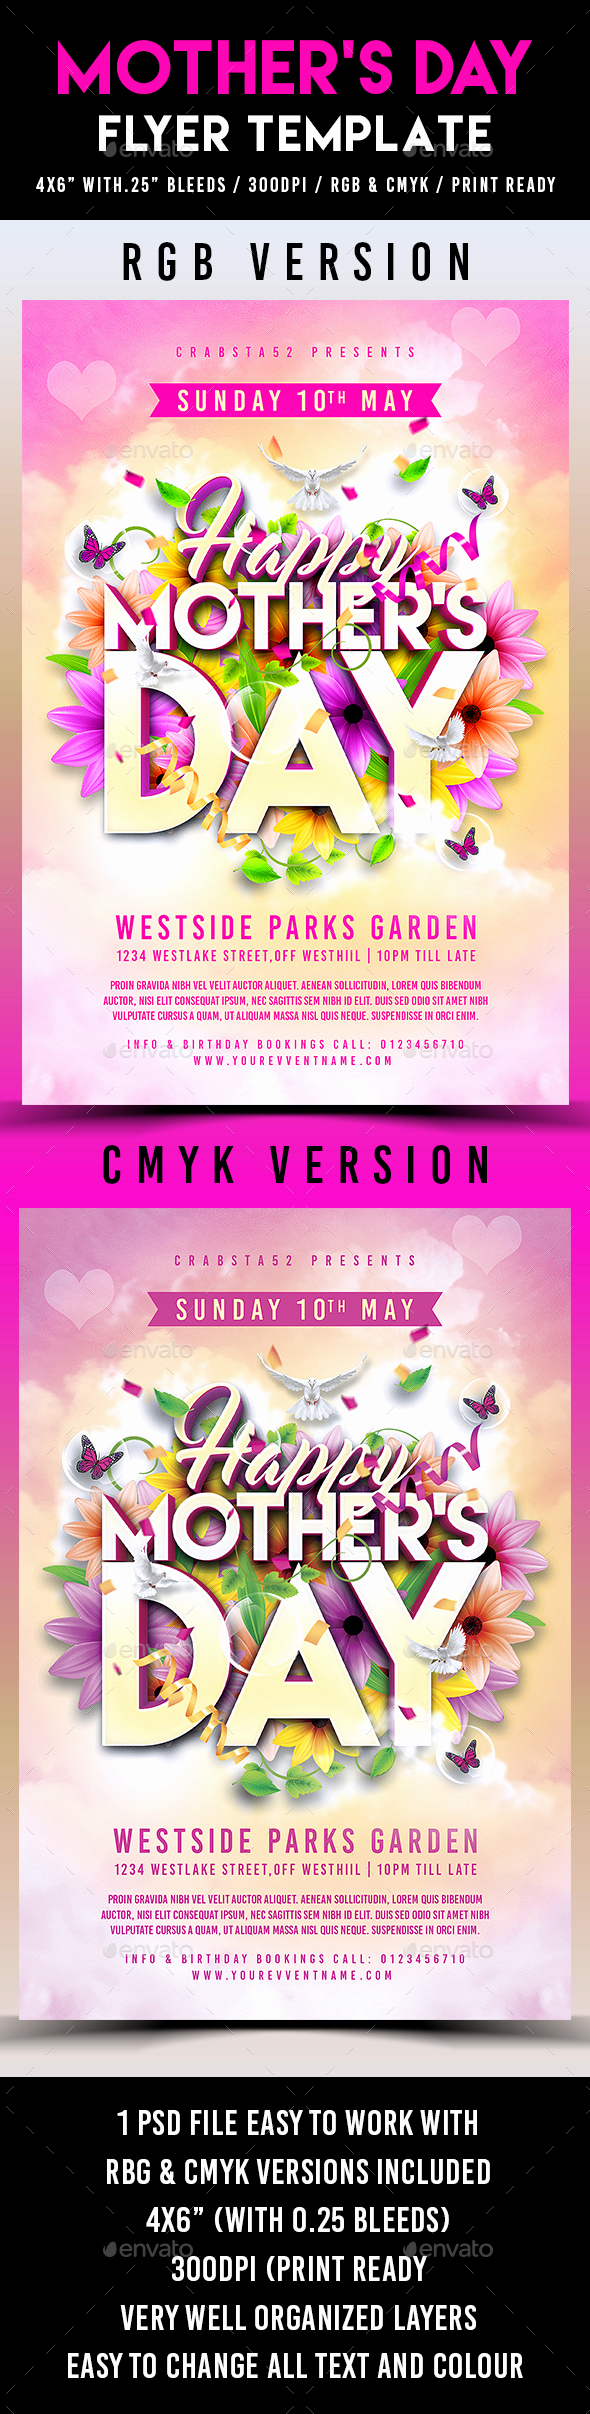 Mothers Day Menu Template Best Of Mother S Day Flyer Template by Crabsta52